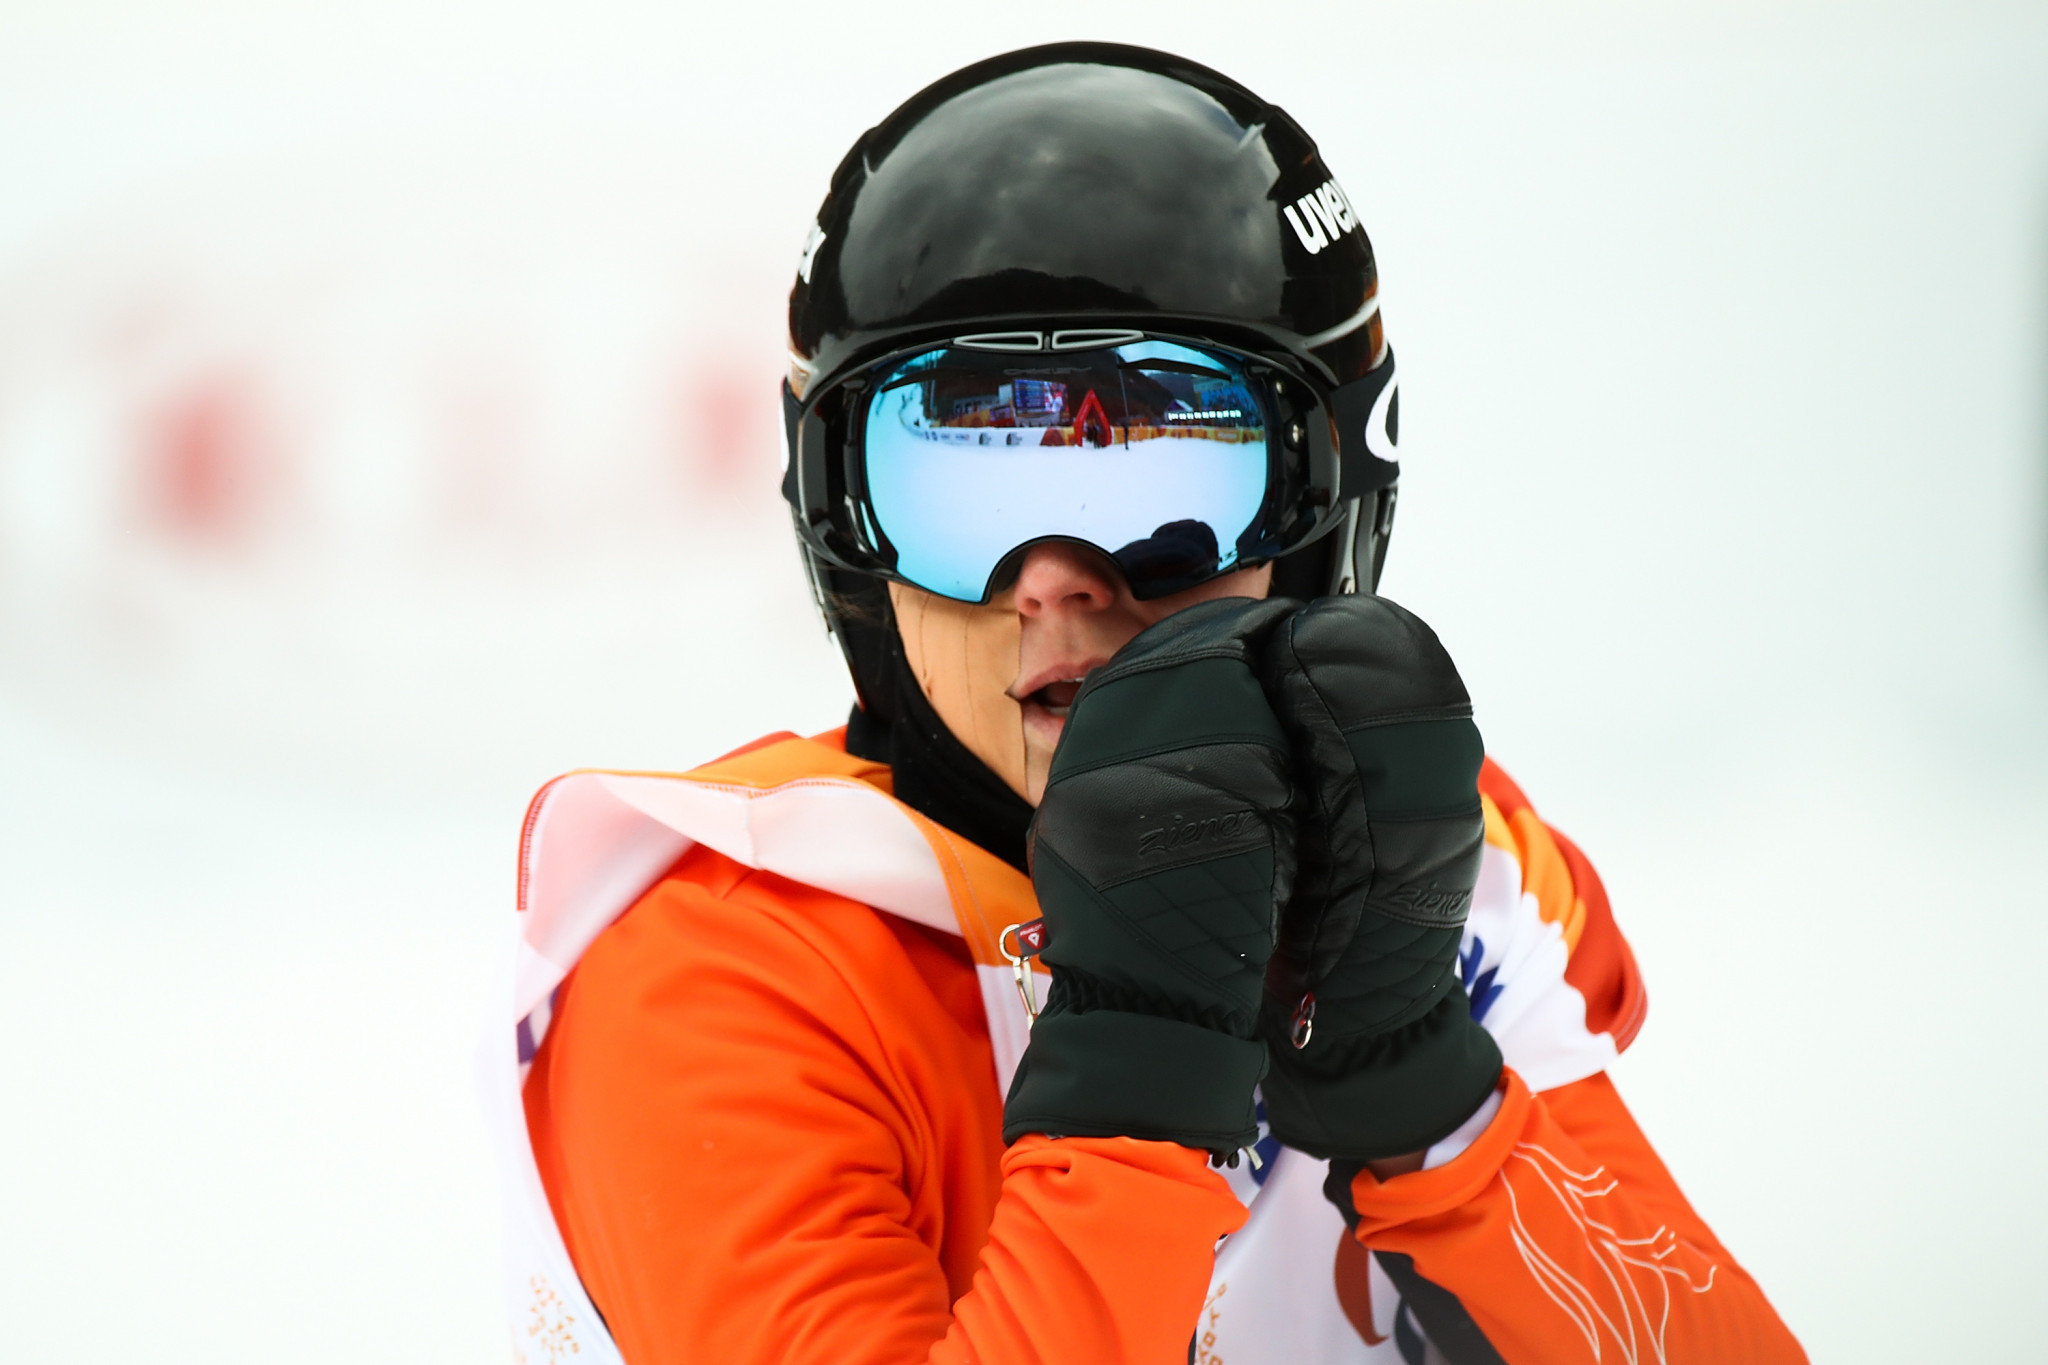 Bunschoten wins second successive Para Snowboard World Cup gold in Pyha